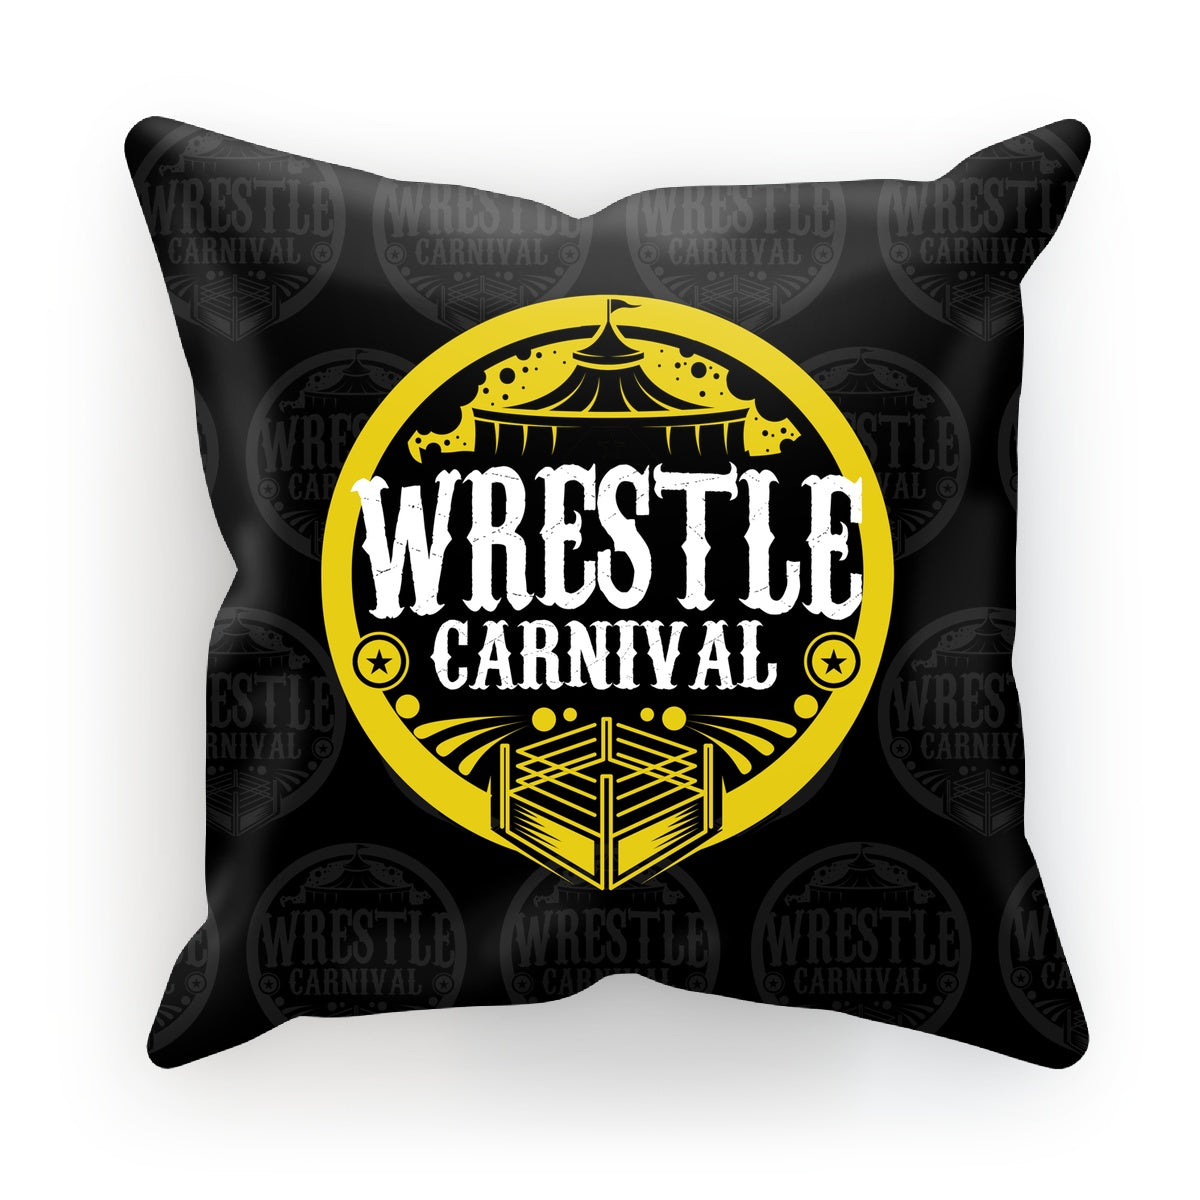 Wrestle Carnival Gold Logo Cushion